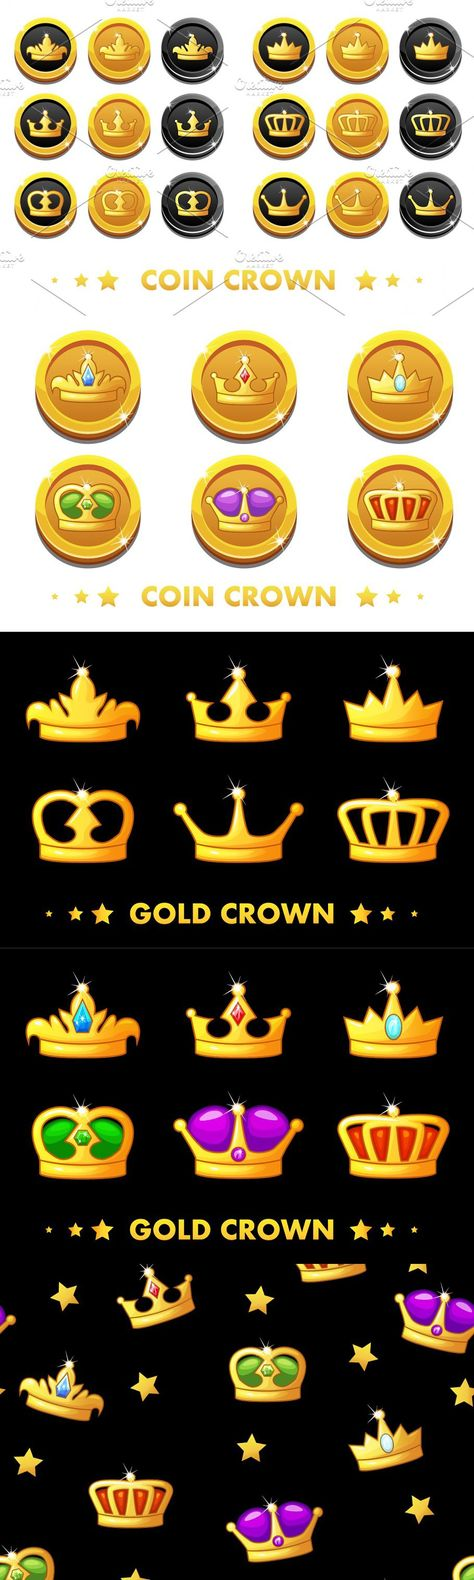 Crown icons, Gold and black coins